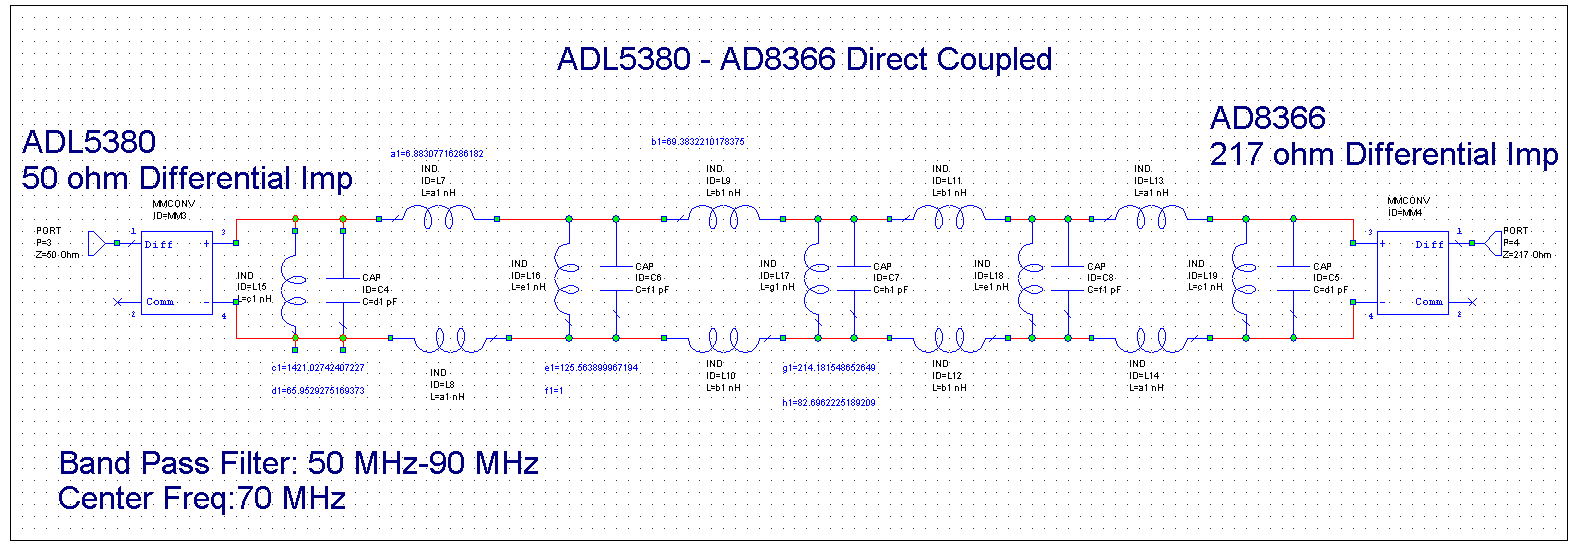 Adl5380 Ad8366 And Ad9684 Filter Integration Qa Rf Ac Coupling Capacitors In Video Designs Electronic Products My Question Is This Fit For The Dc Coupled Or Should I Put Capacitor Input Output Of